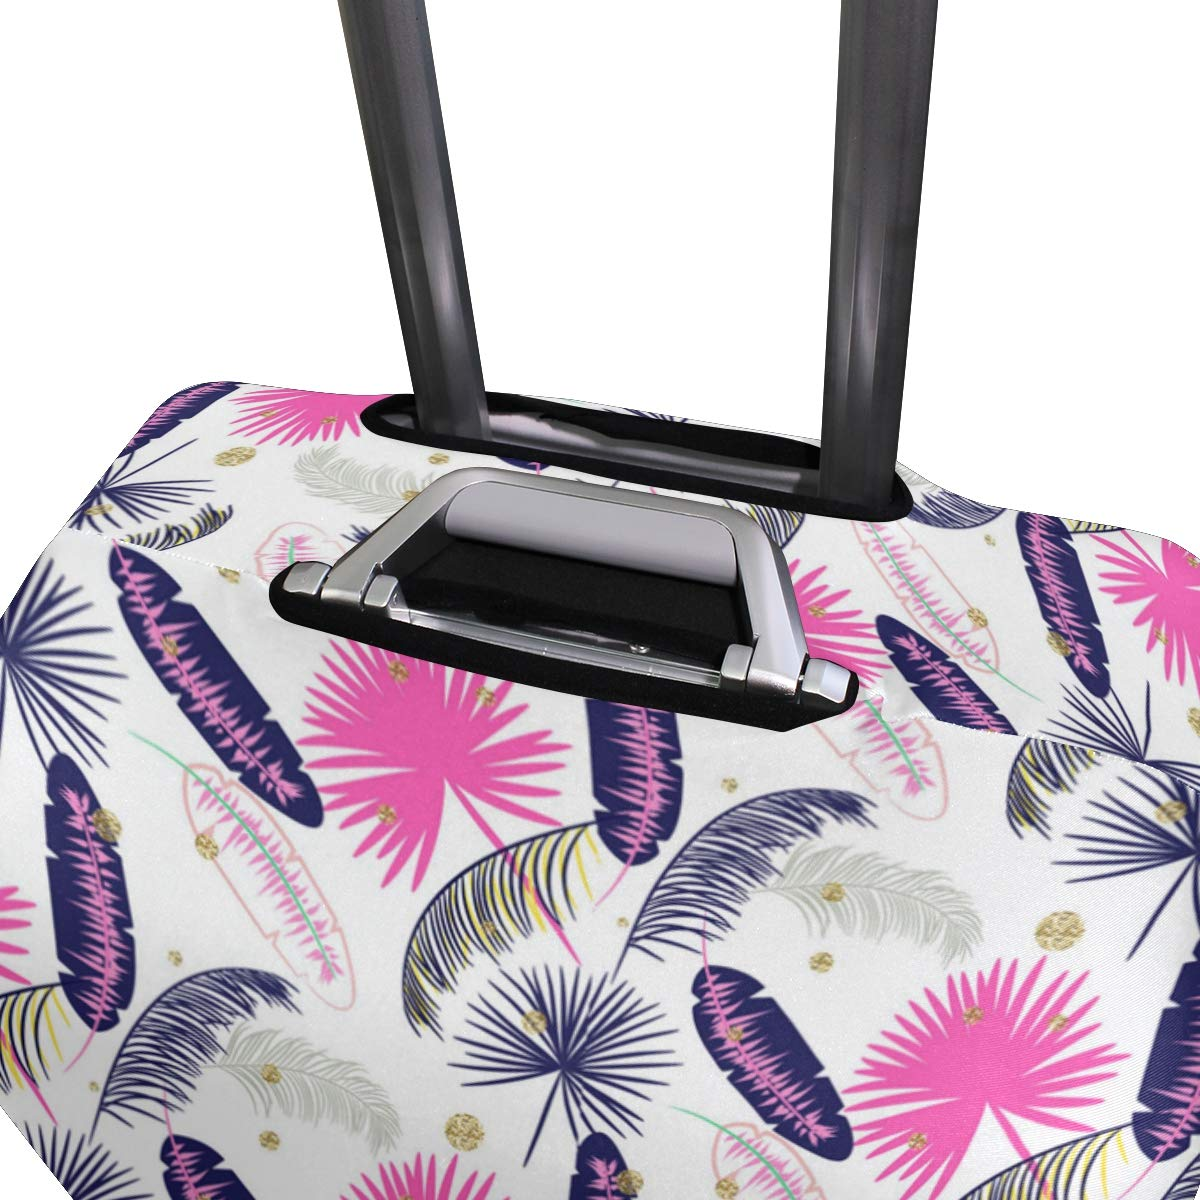 Wonderful Banana Leaf Clothing Traveler Lightweight Rotating Luggage Protector Case Can Carry With You Can Expand Travel Bag Trolley Rolling Luggage Protector Case